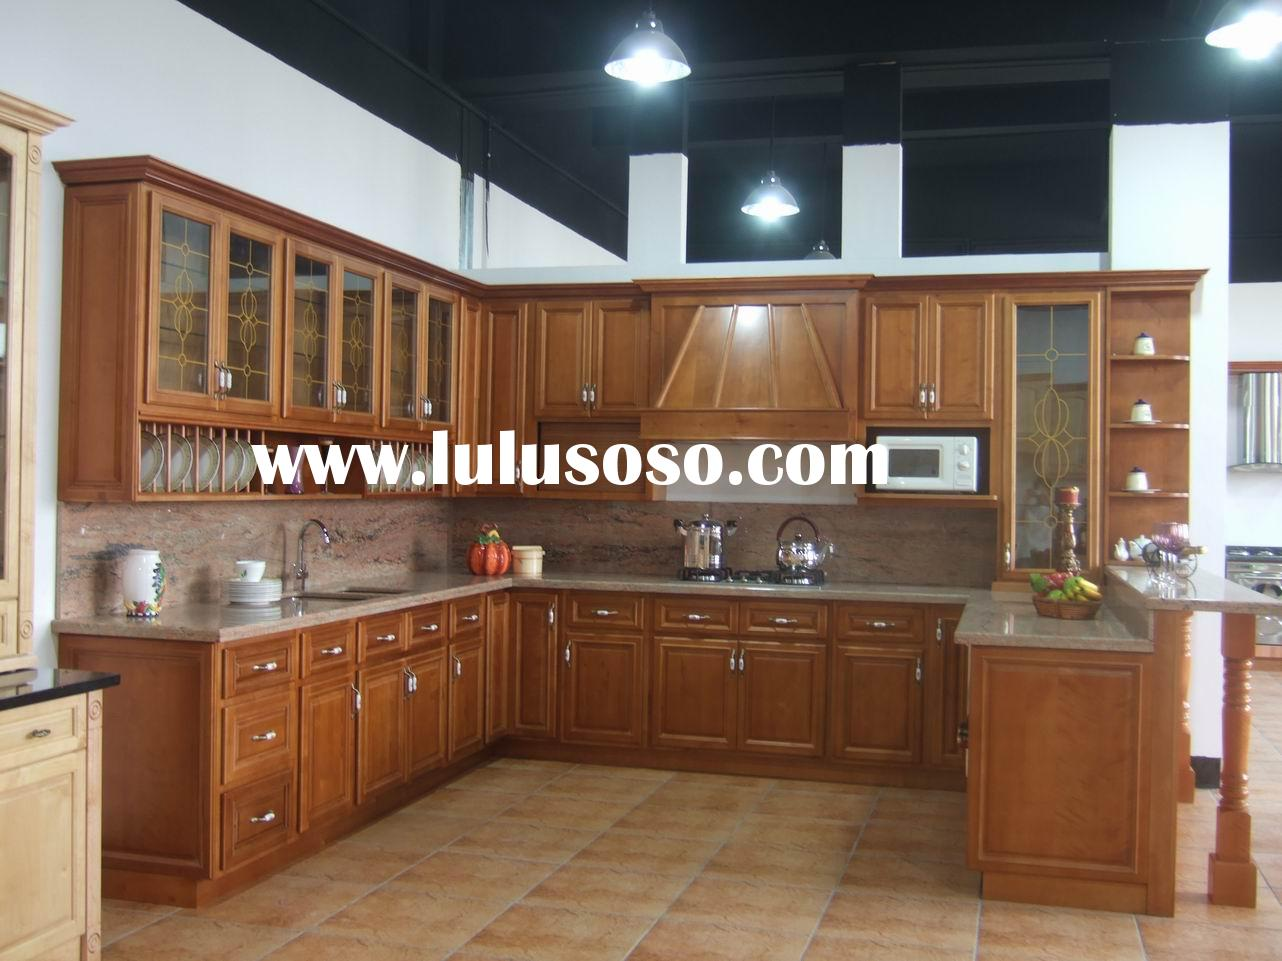 Solid American Cherry Wood Kitchen Cabinets,Kitchen Cabinetry,Kitchen Furniture